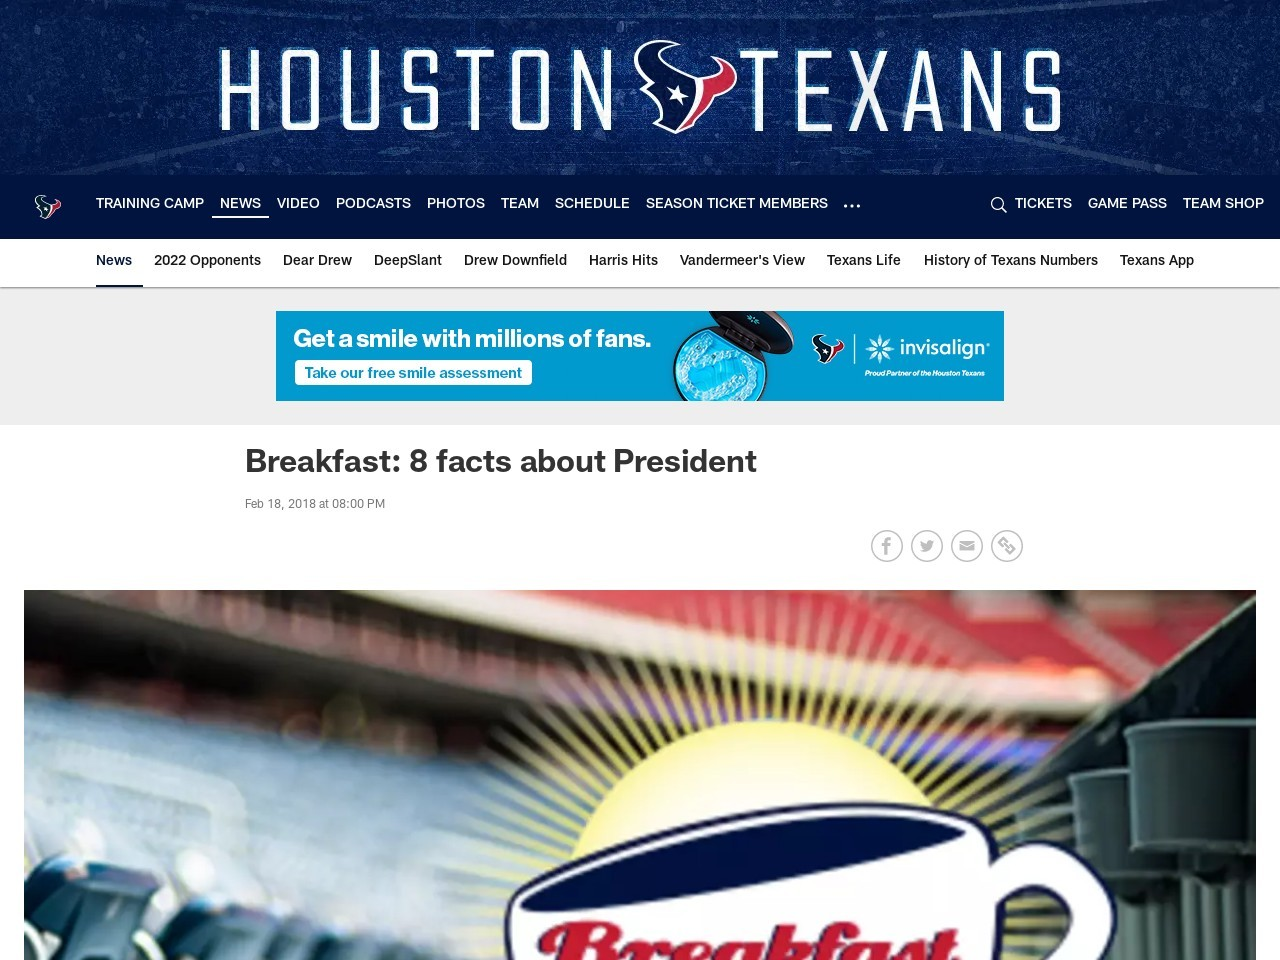 Breakfast: 8 facts about President